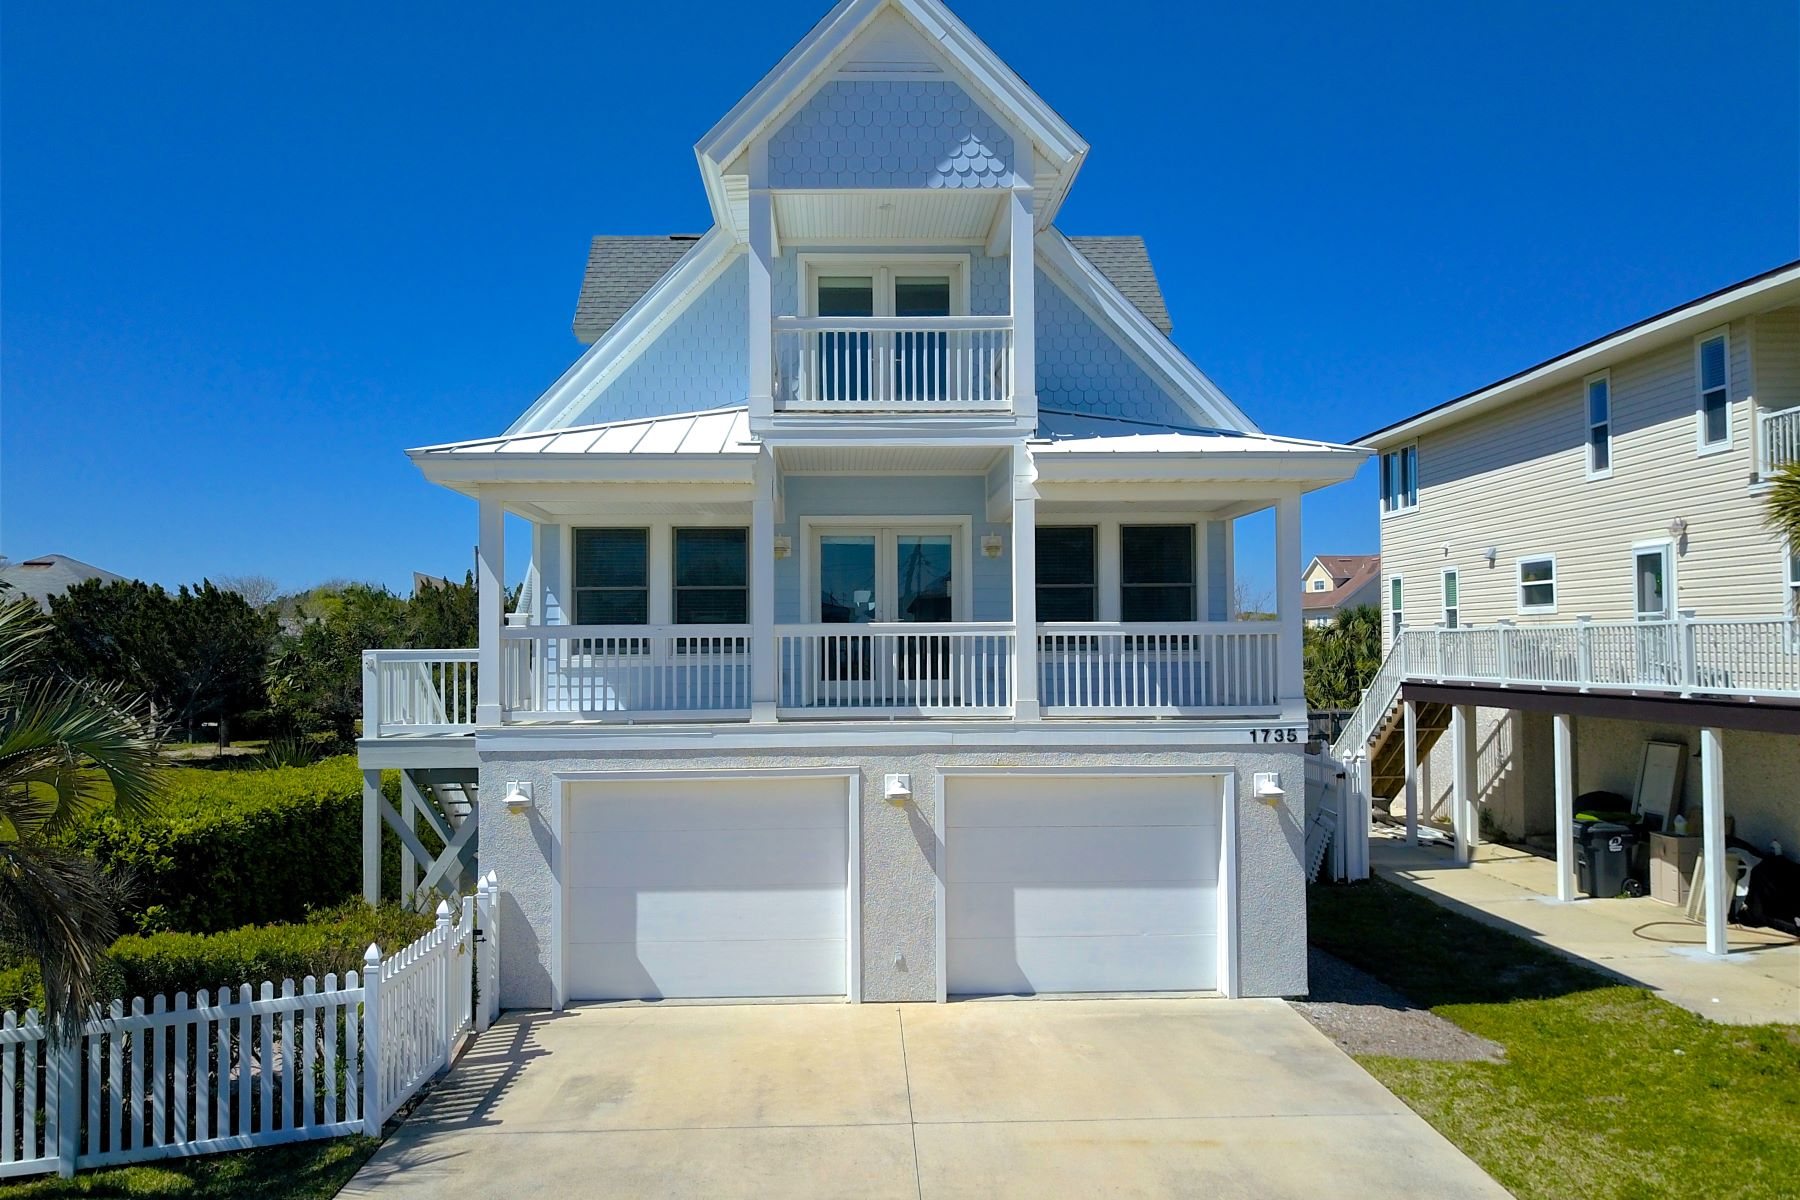 Maison unifamiliale pour l Vente à Charming Beach House with Ocean Views 1735 North Fletcher Avenue Amelia Island, Florida, 32034 États-Unis